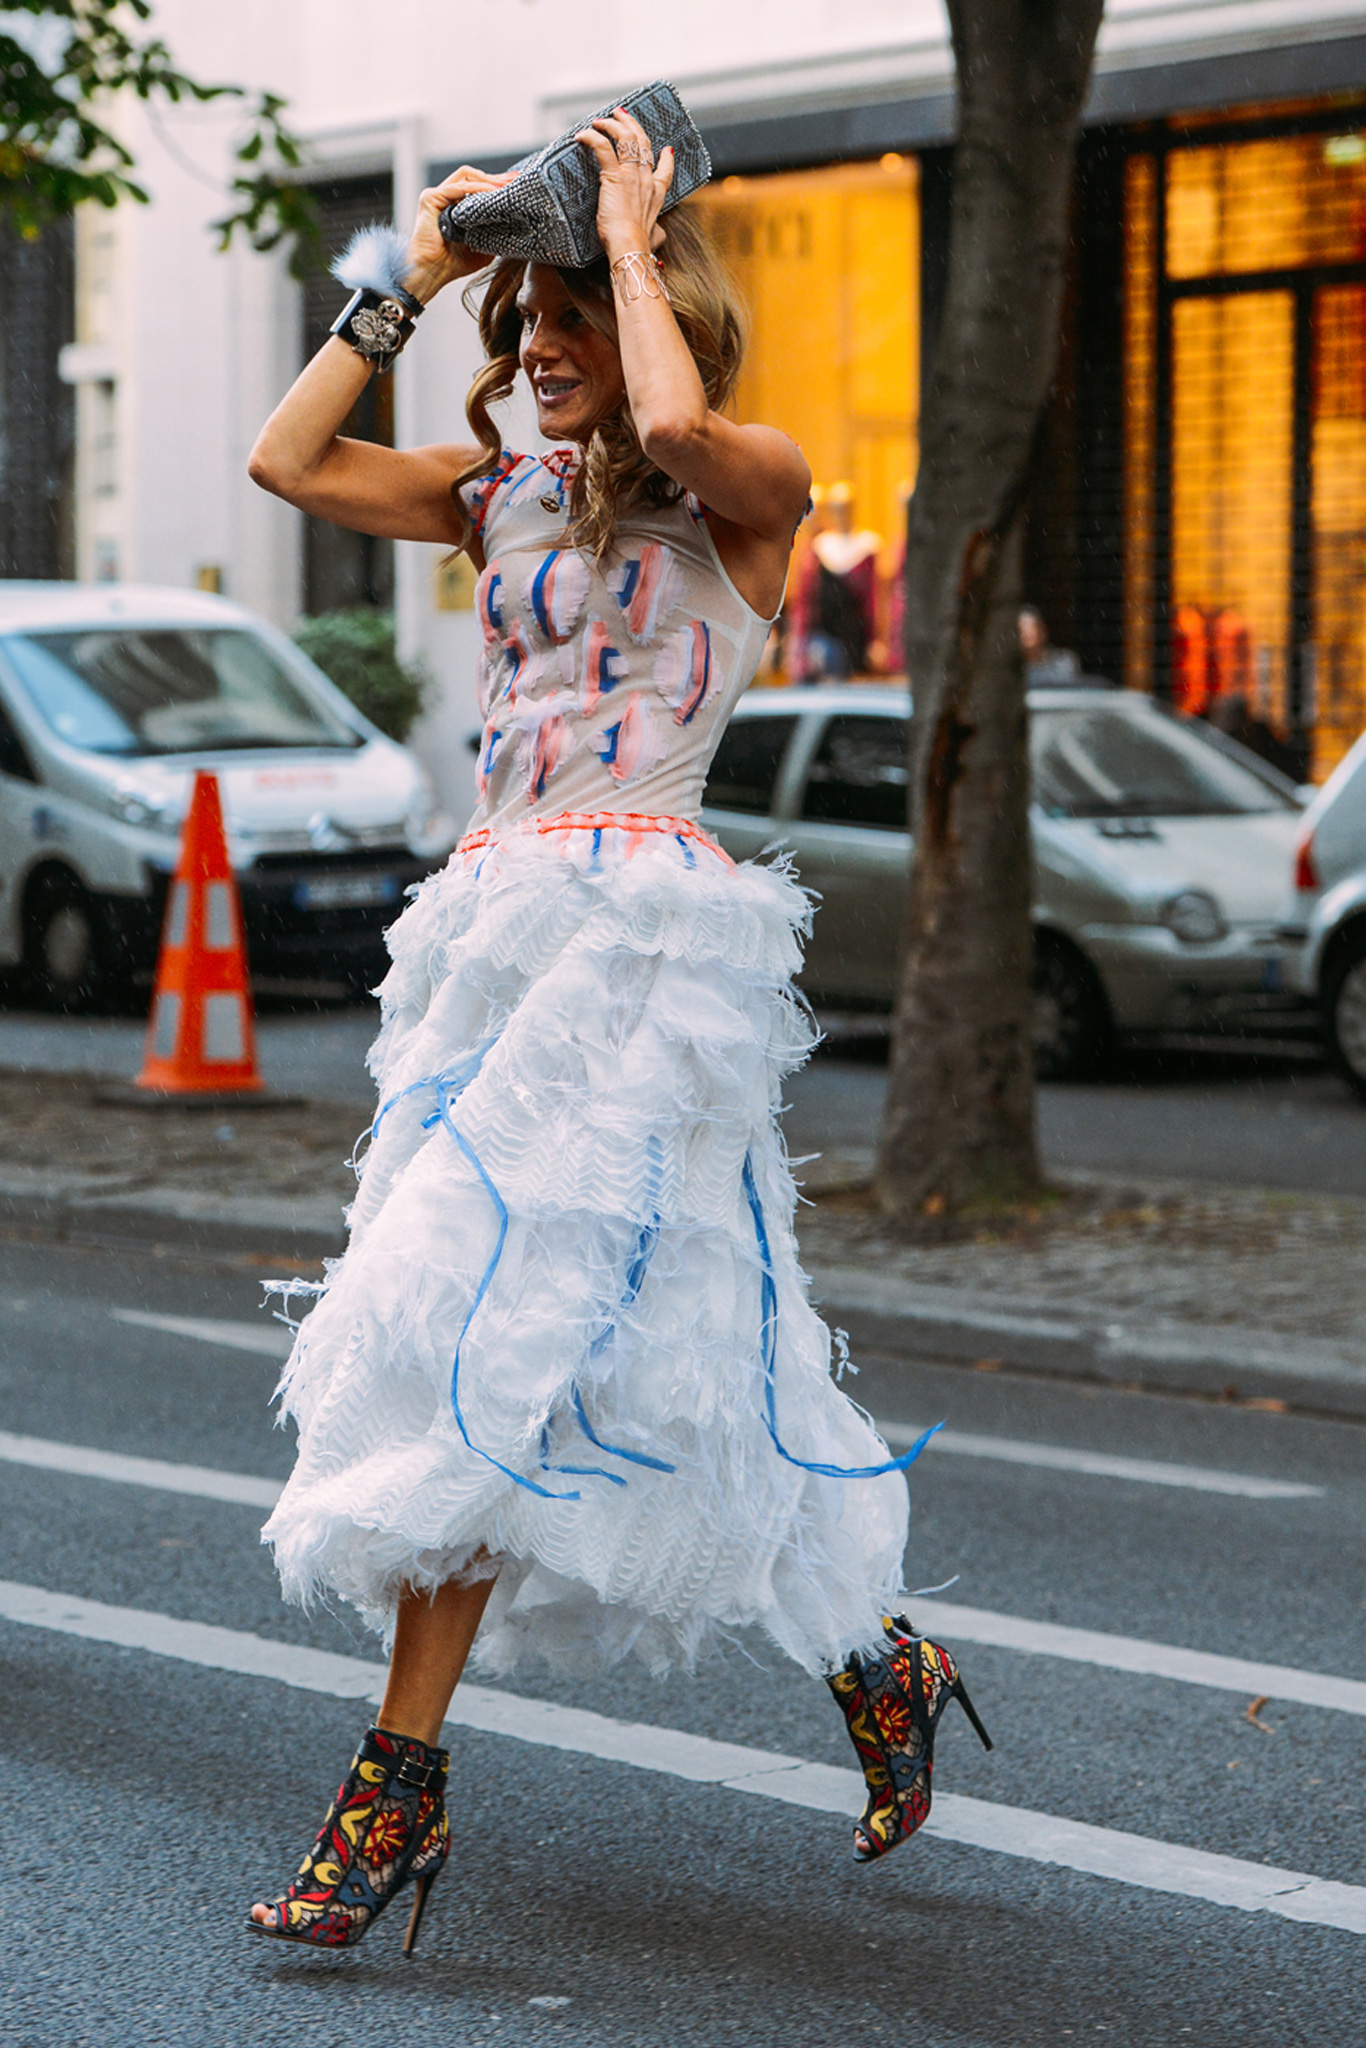 Anna Dello Russo stepped out in an unraveling feathery dress.